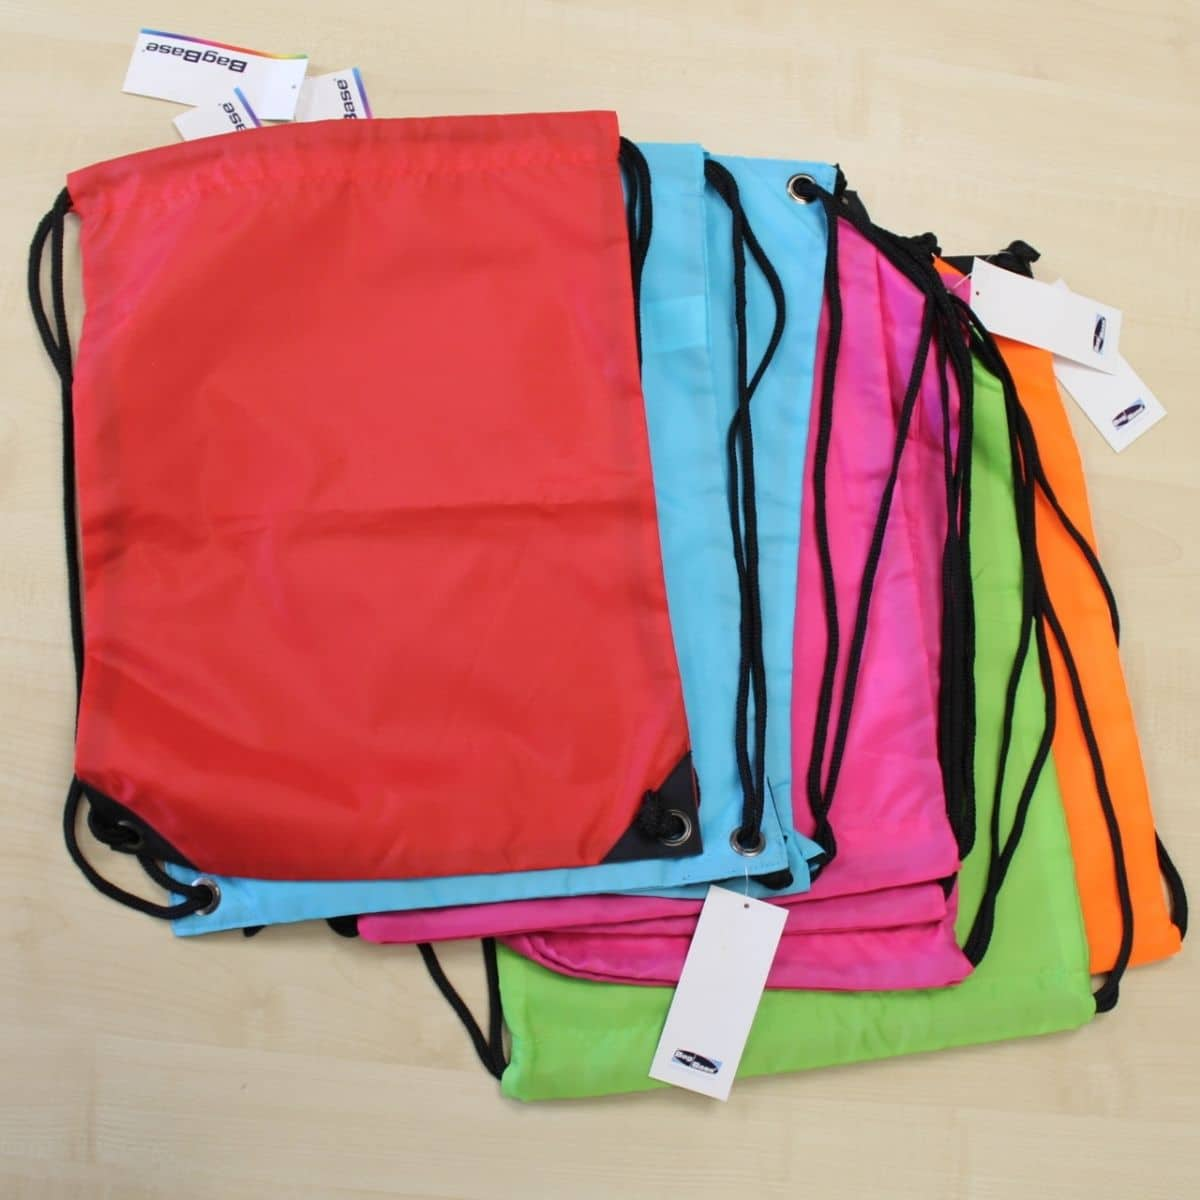 Pile of drawstring bags in different colours